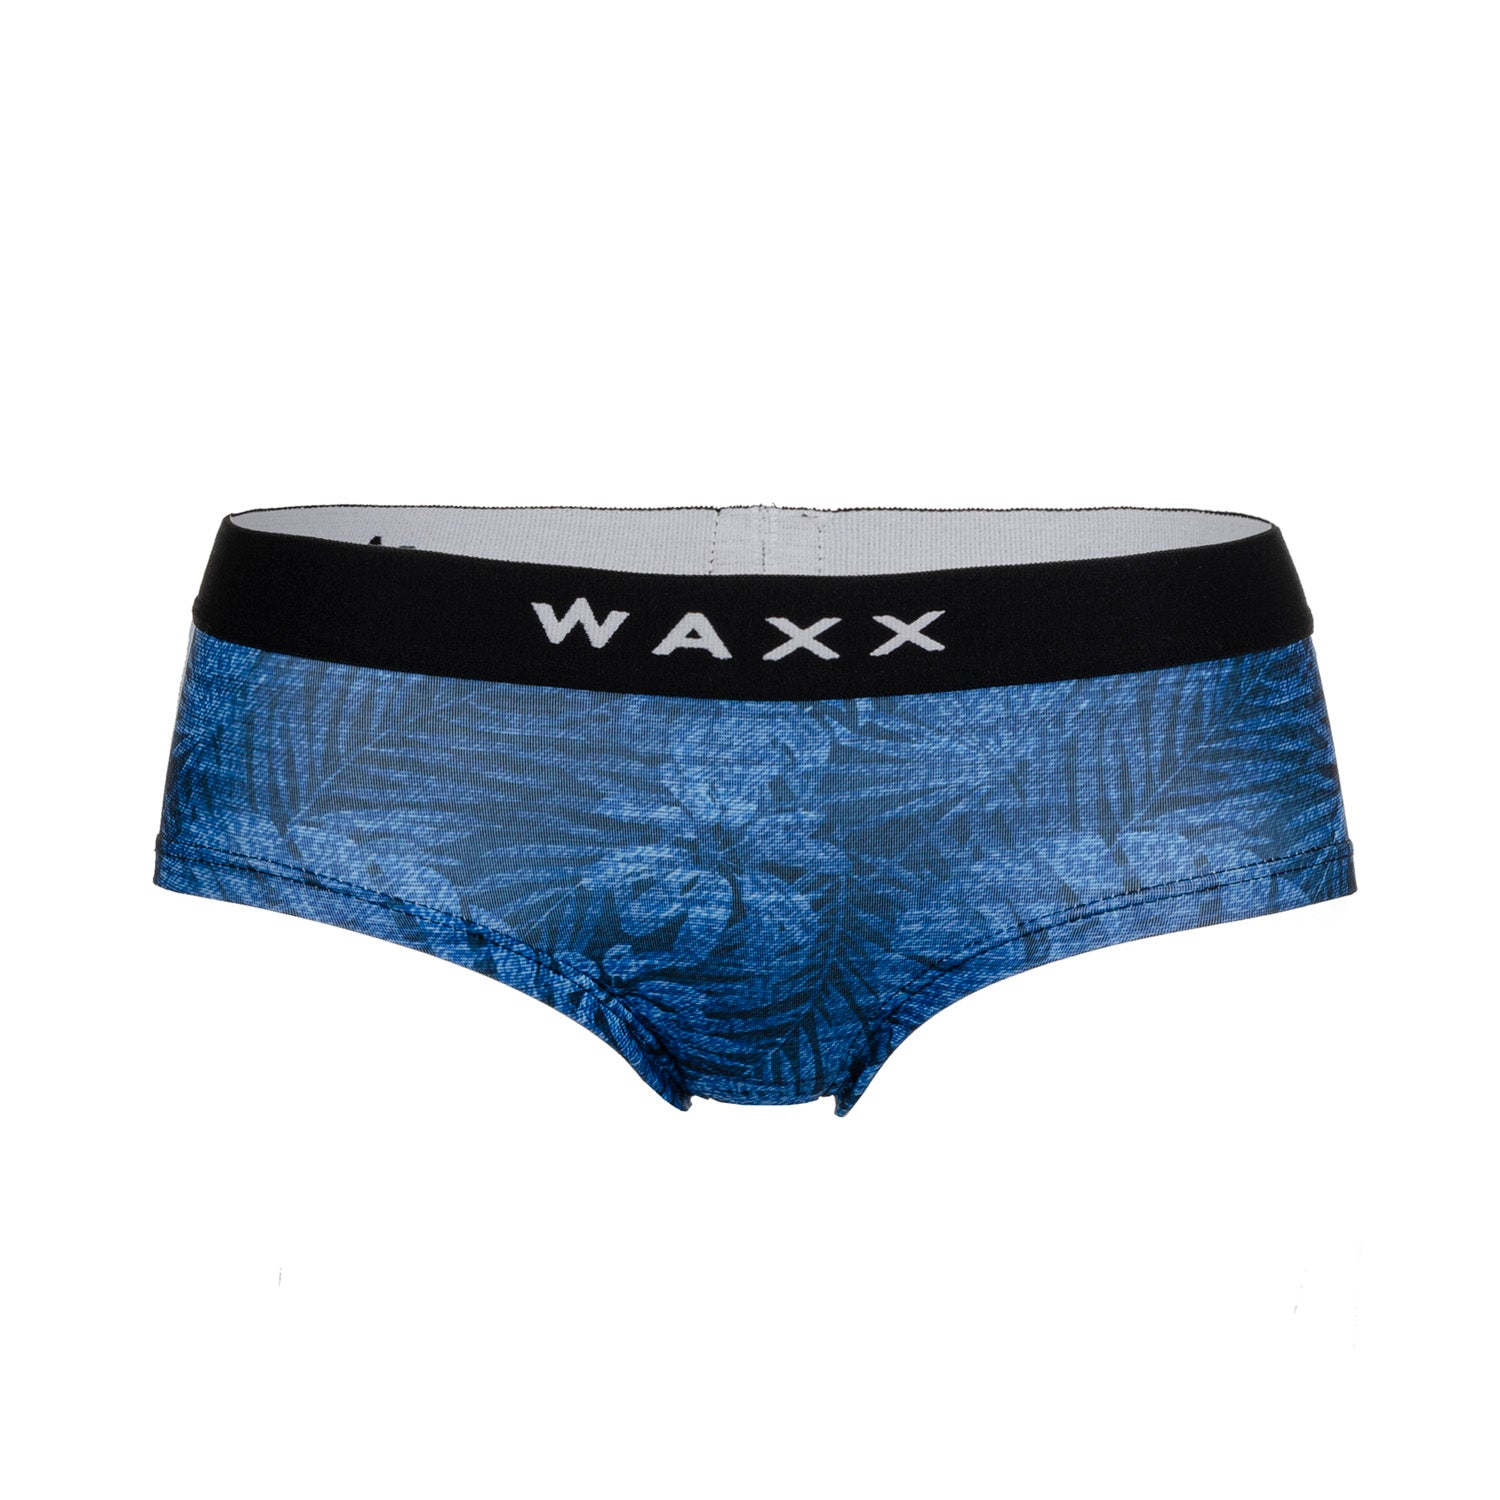 Waxx Ladies Microfibre Boy Short Tropic